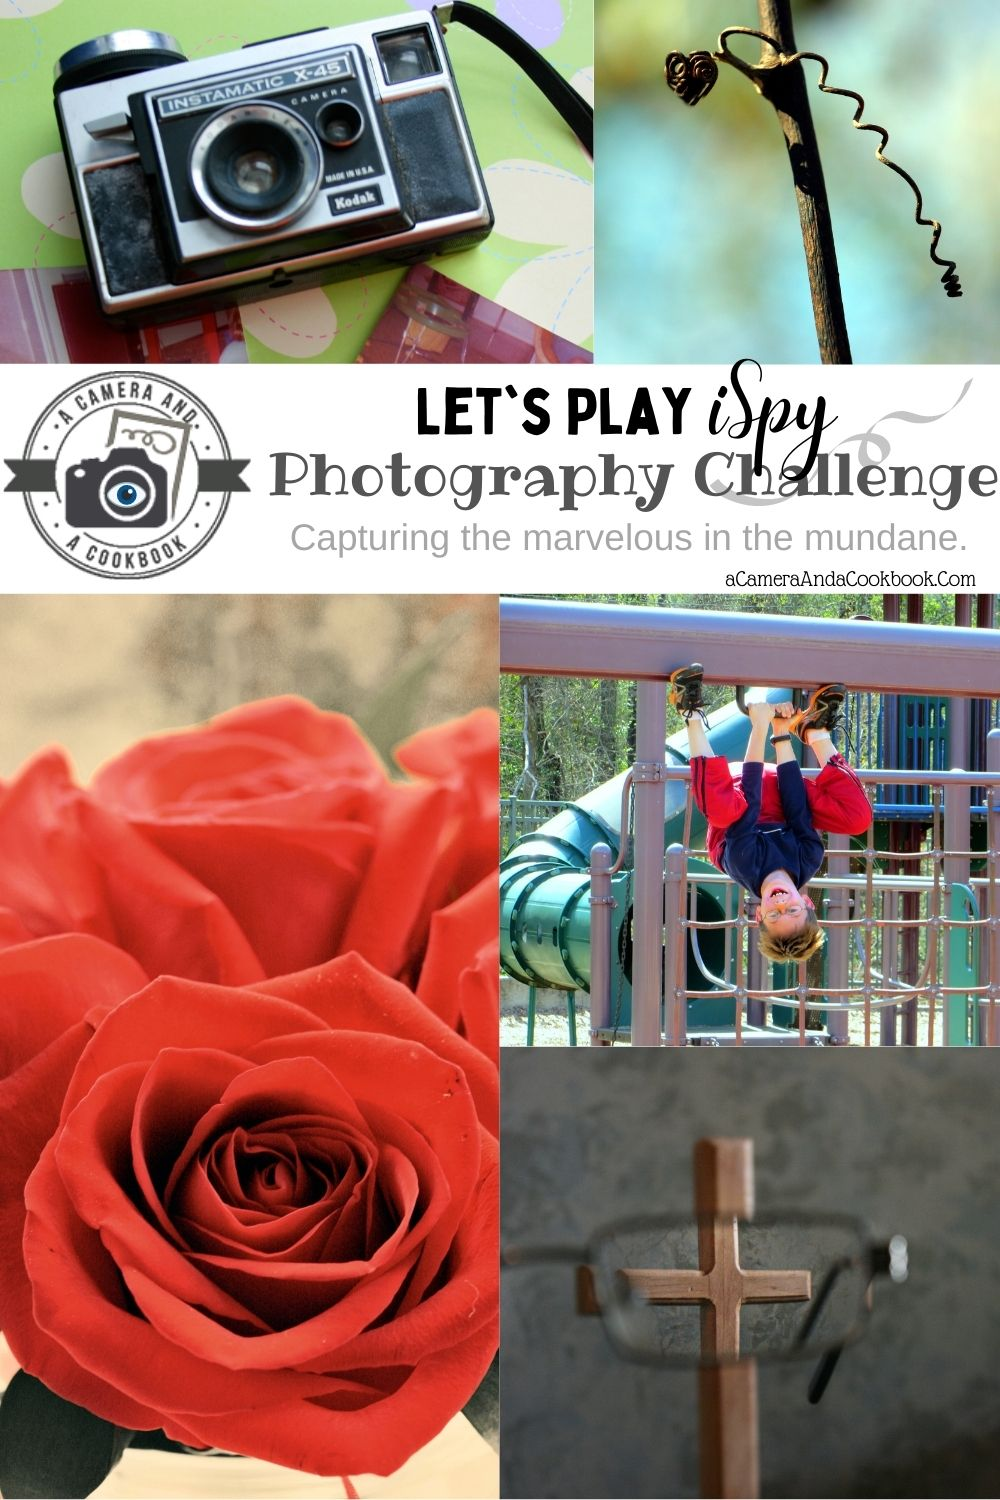 iSpy Photography Challenge - Join in on the fun every Saturday. Open your eyes to better photography by looking for the marvelous in the mundane!